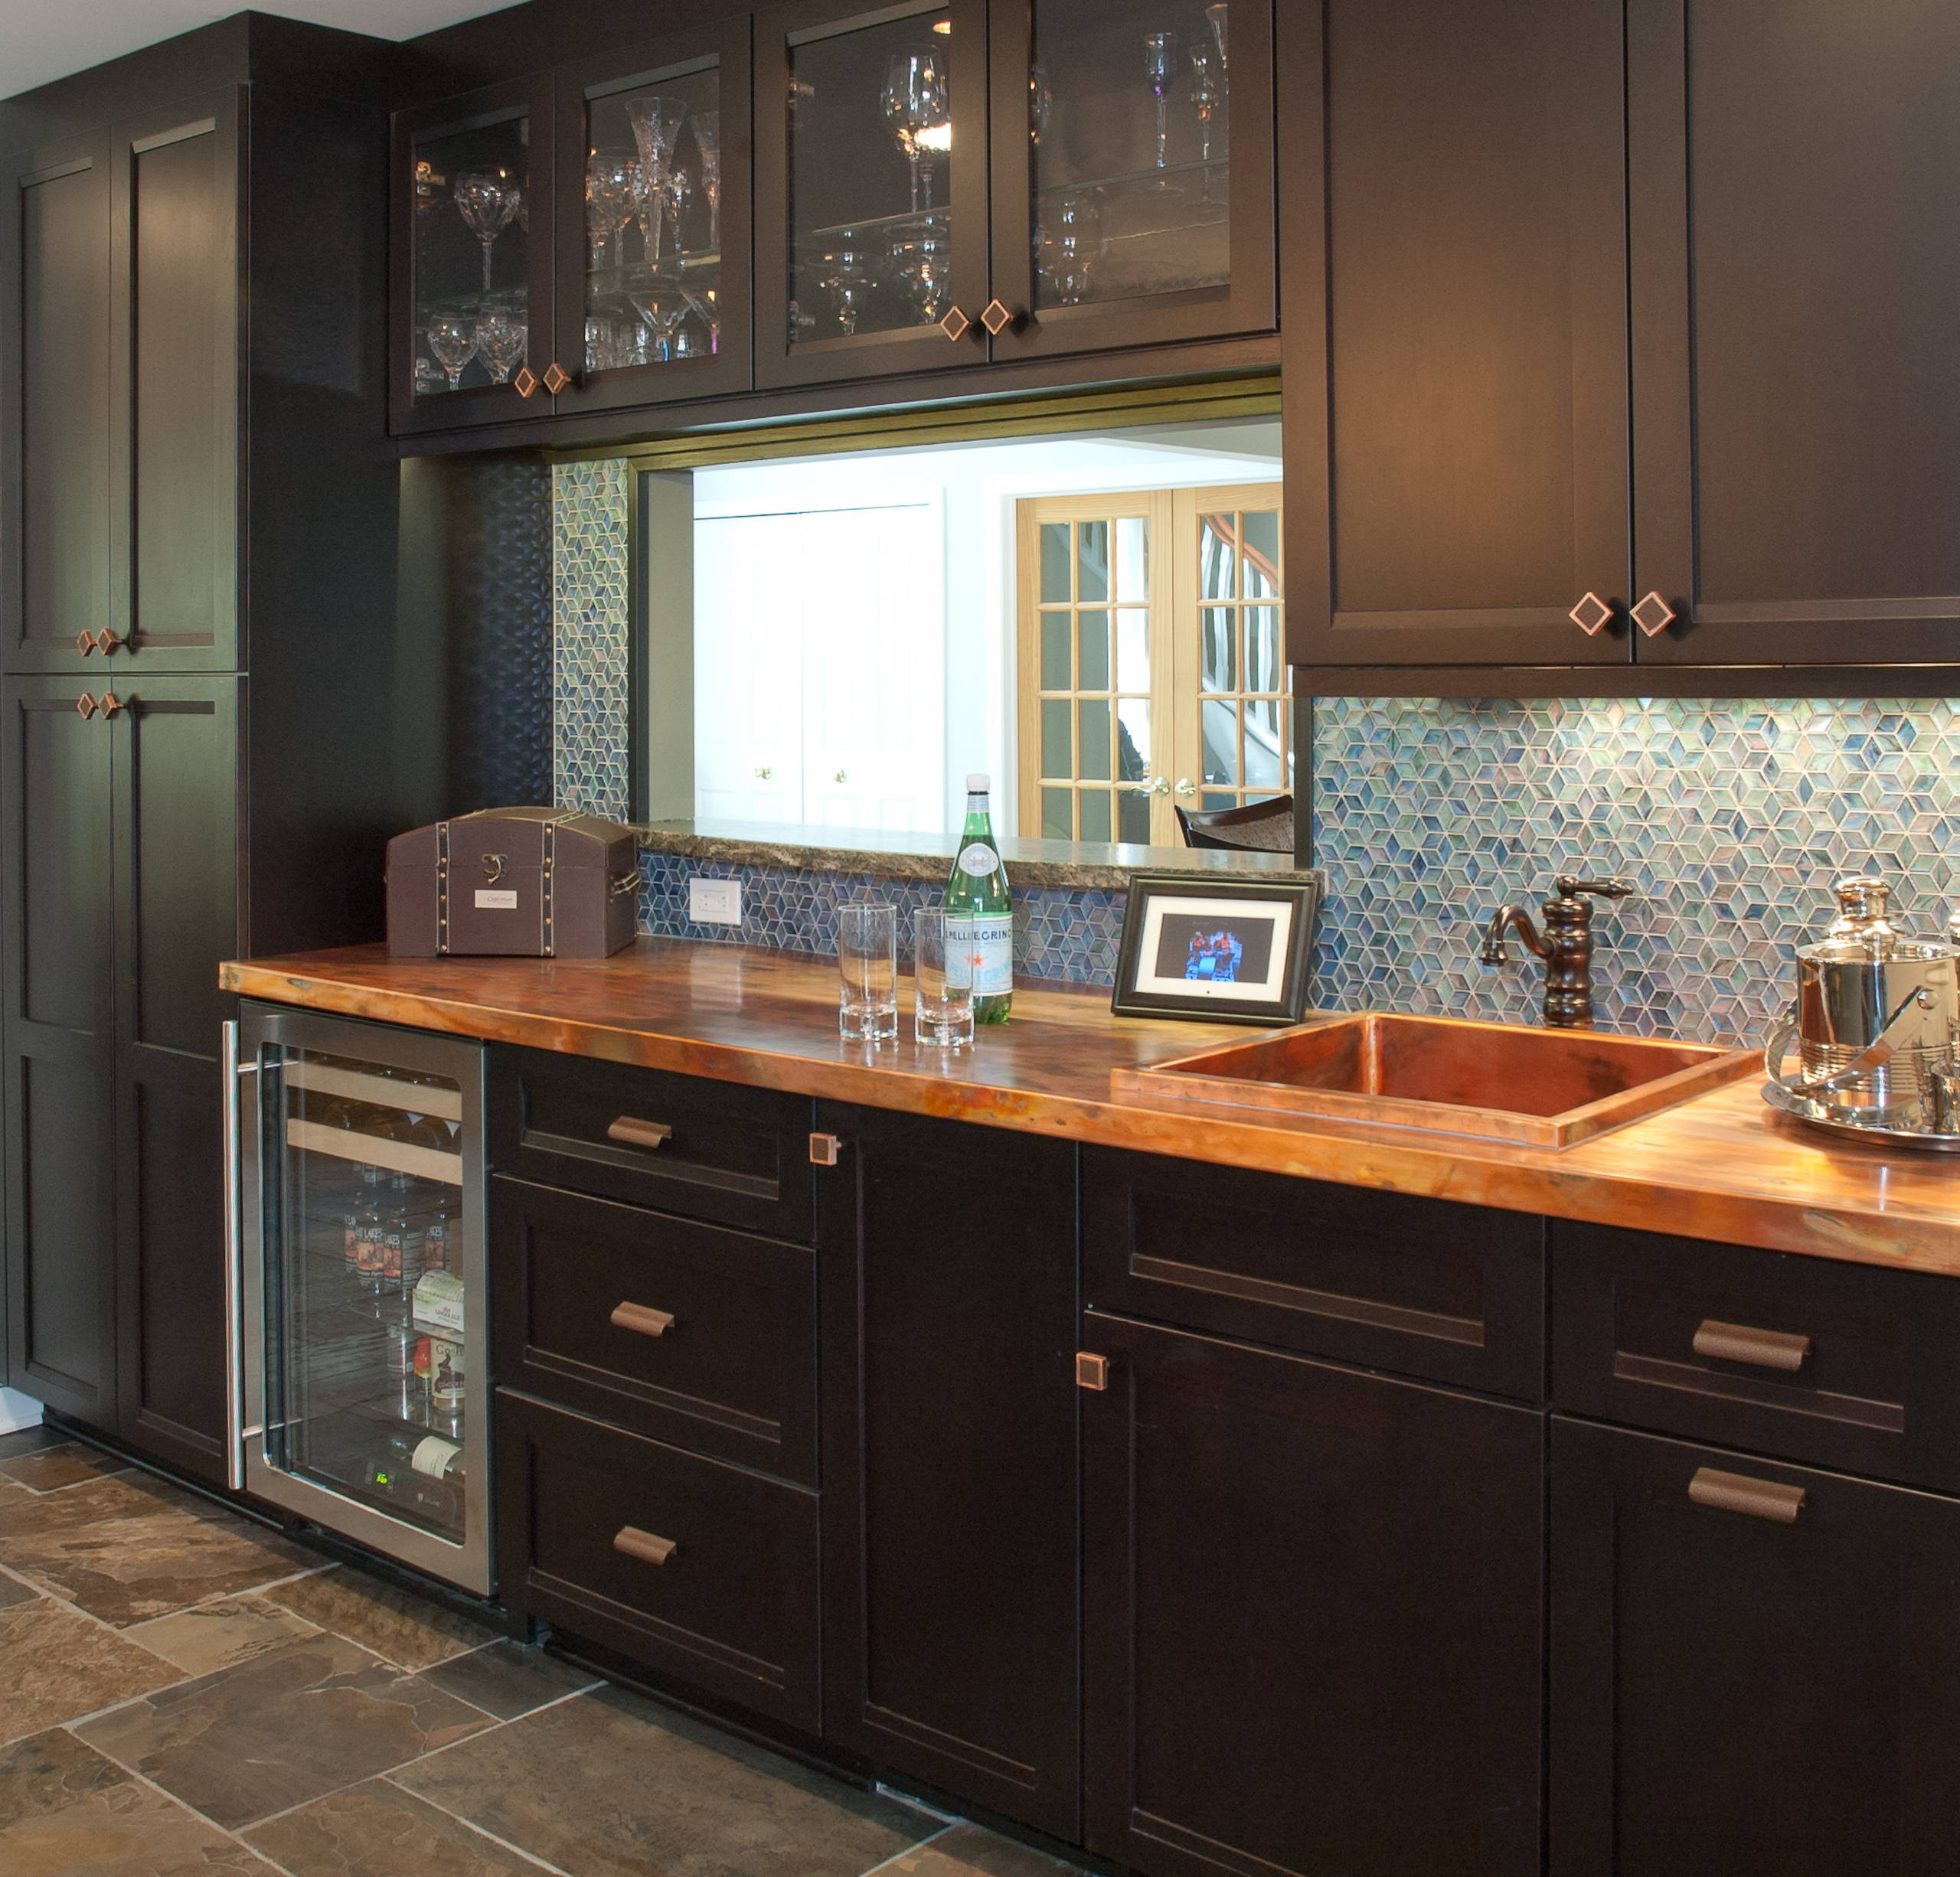 75 Beautiful Kitchen With Copper Countertops And Mosaic Tile Backsplash Pictures Ideas November 2020 Houzz